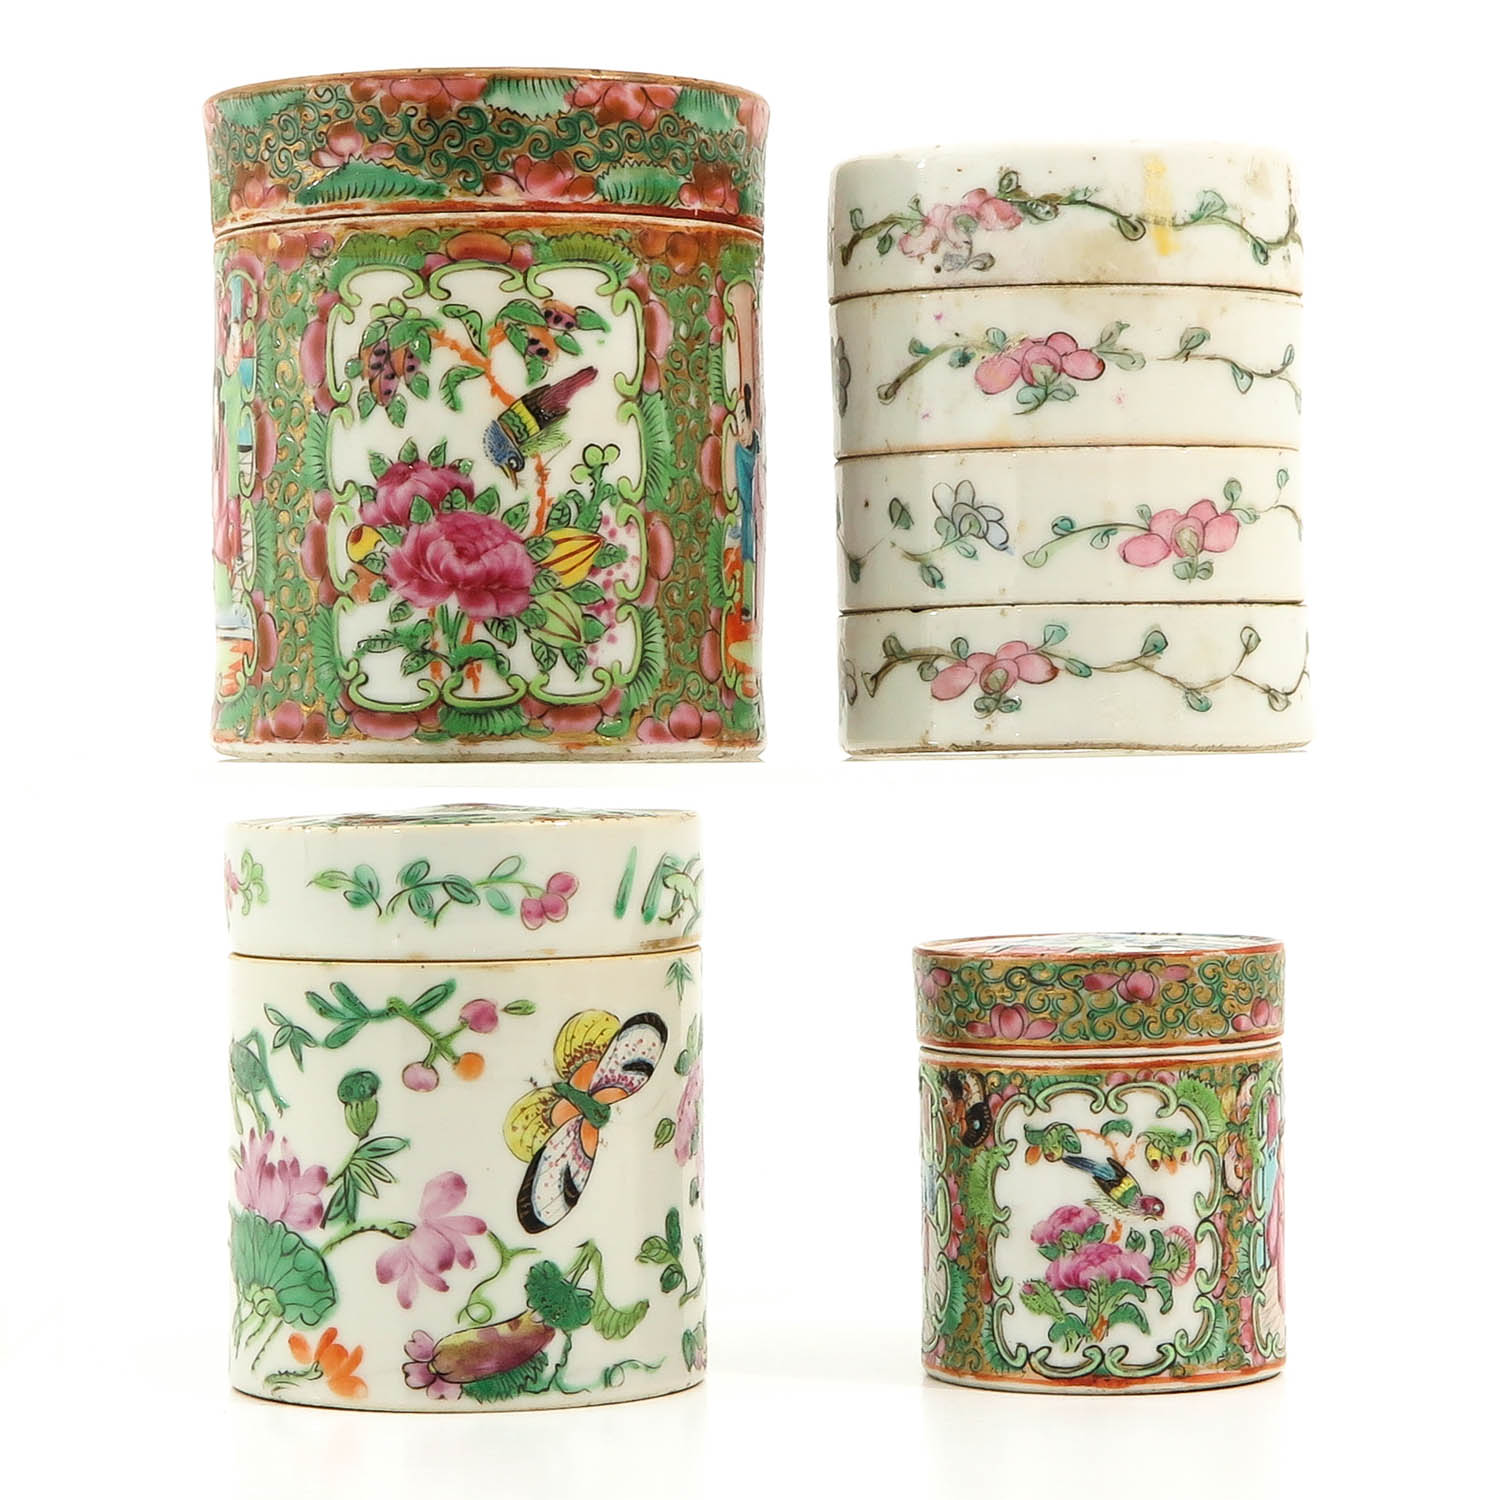 A Collection of 4 Chinese Boxes - Image 4 of 10